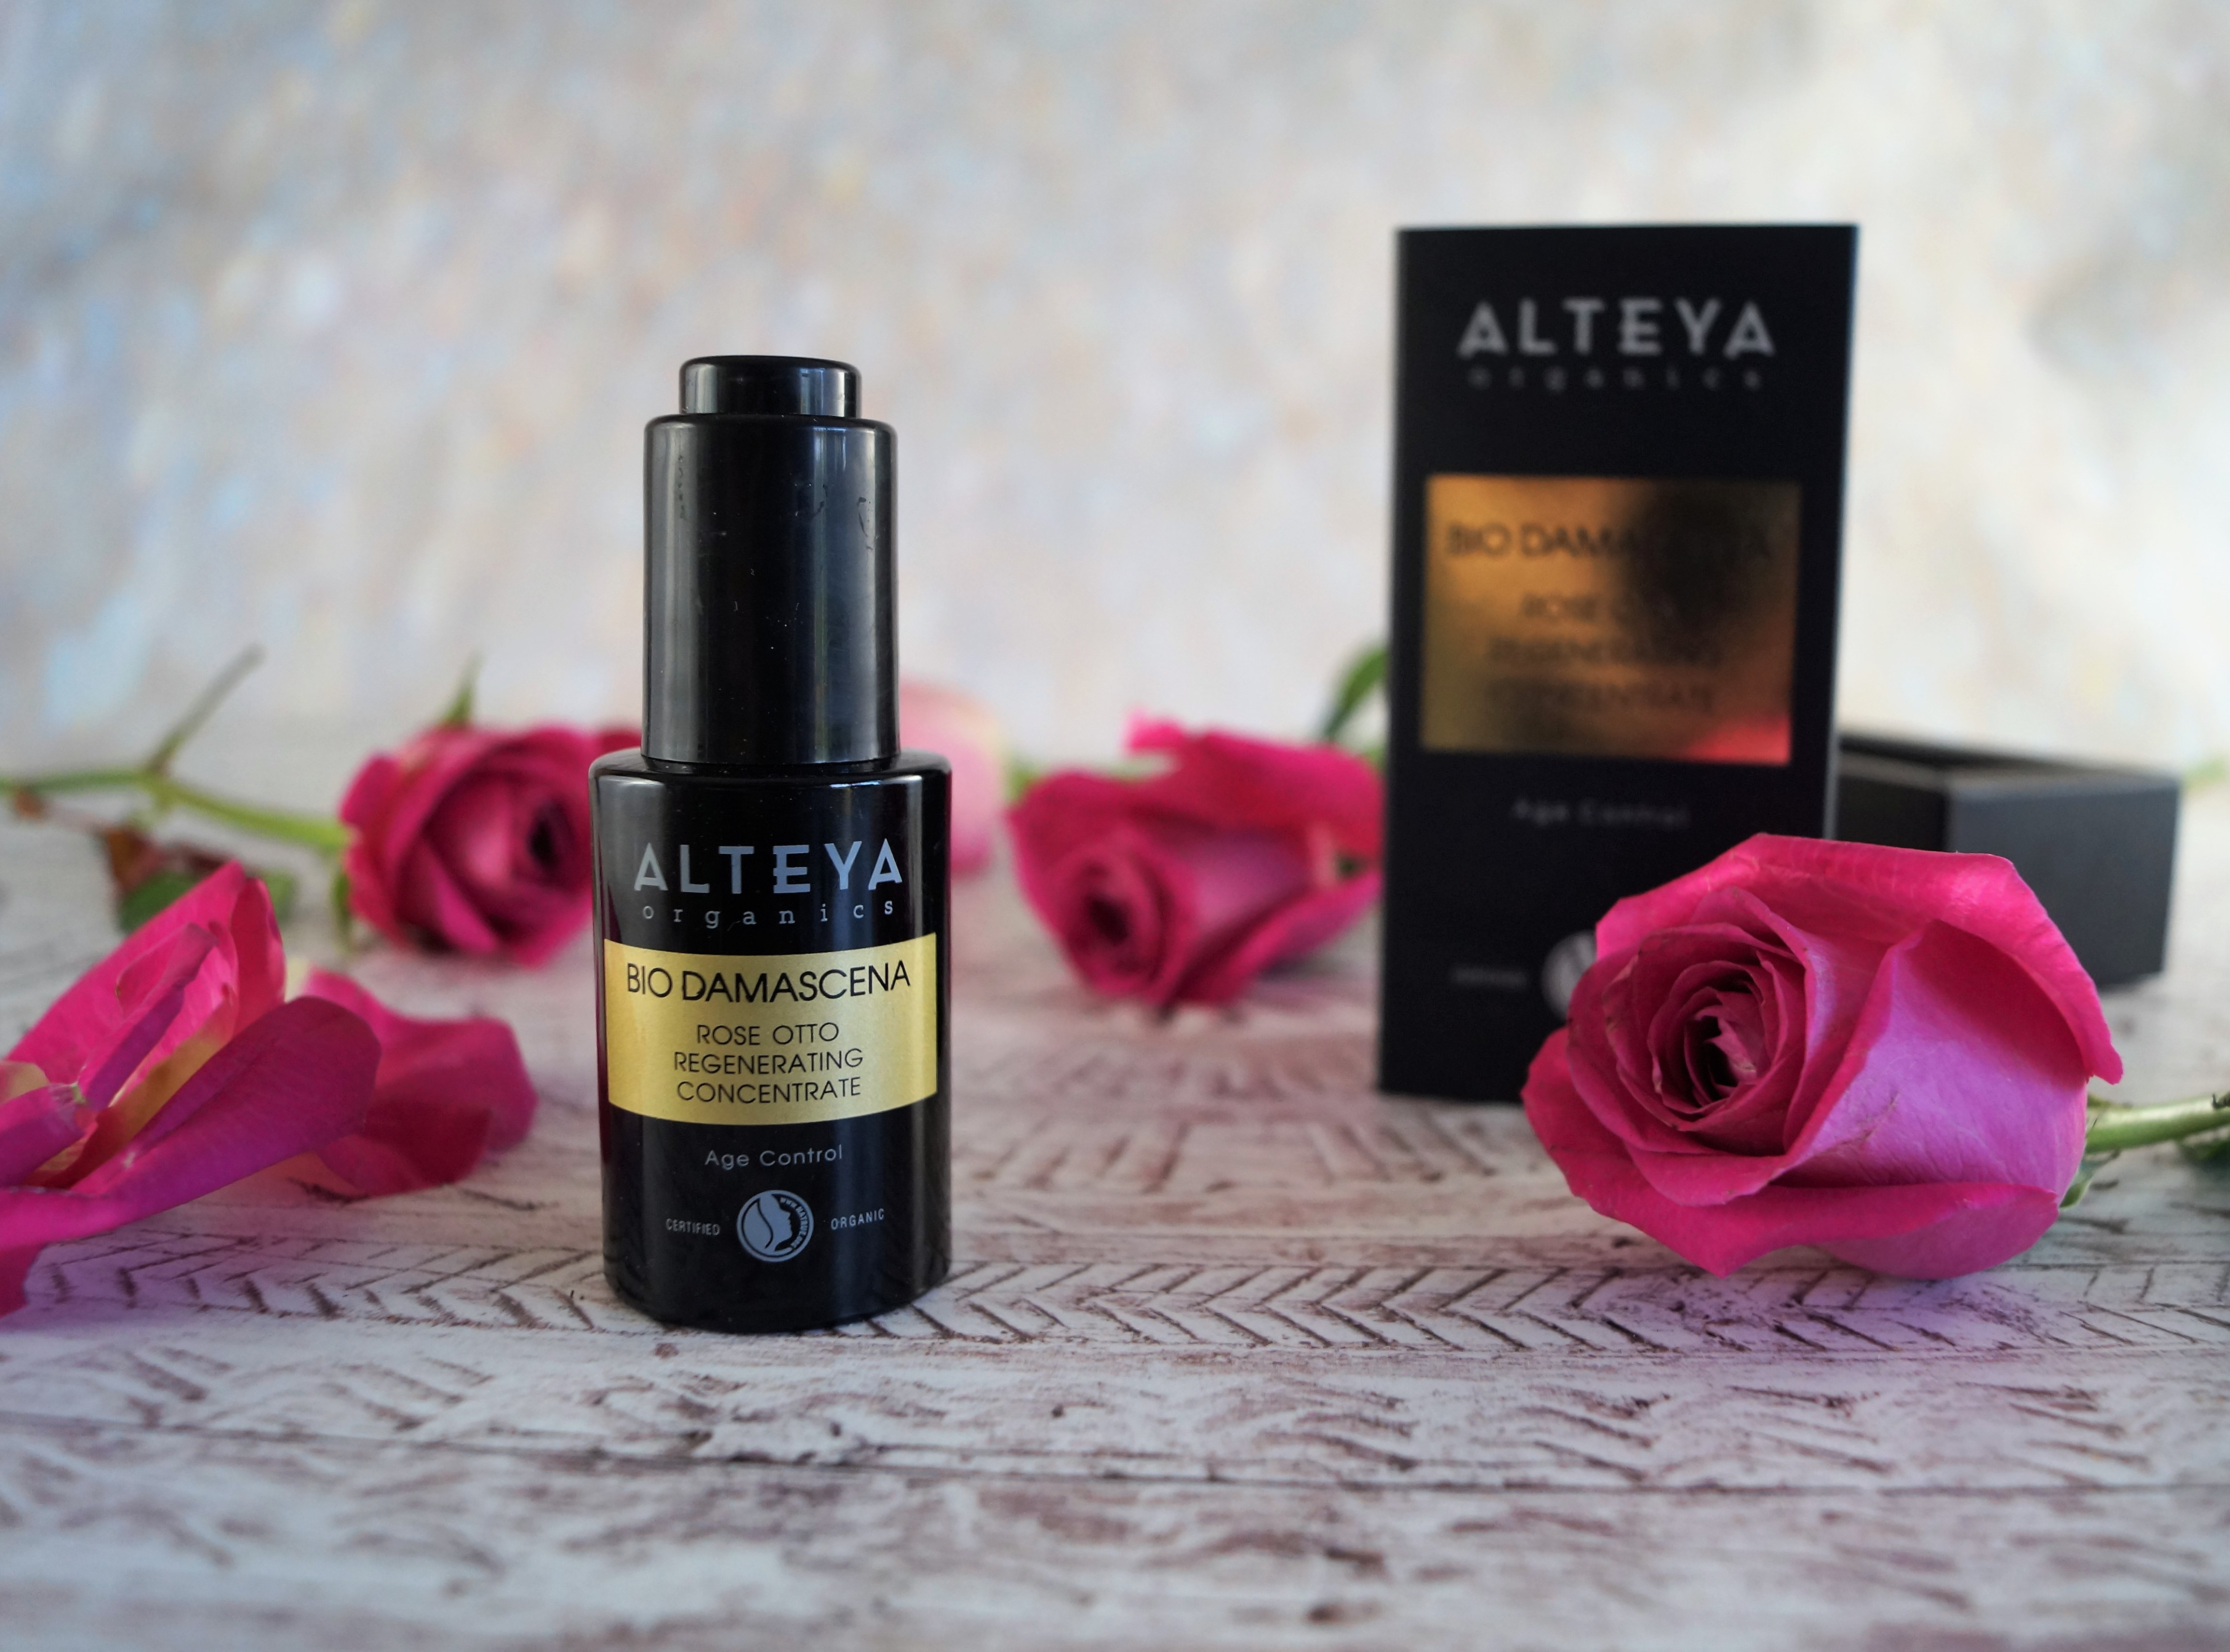 Alteya Certified Organic Rose Otto Regenerating Concentrate